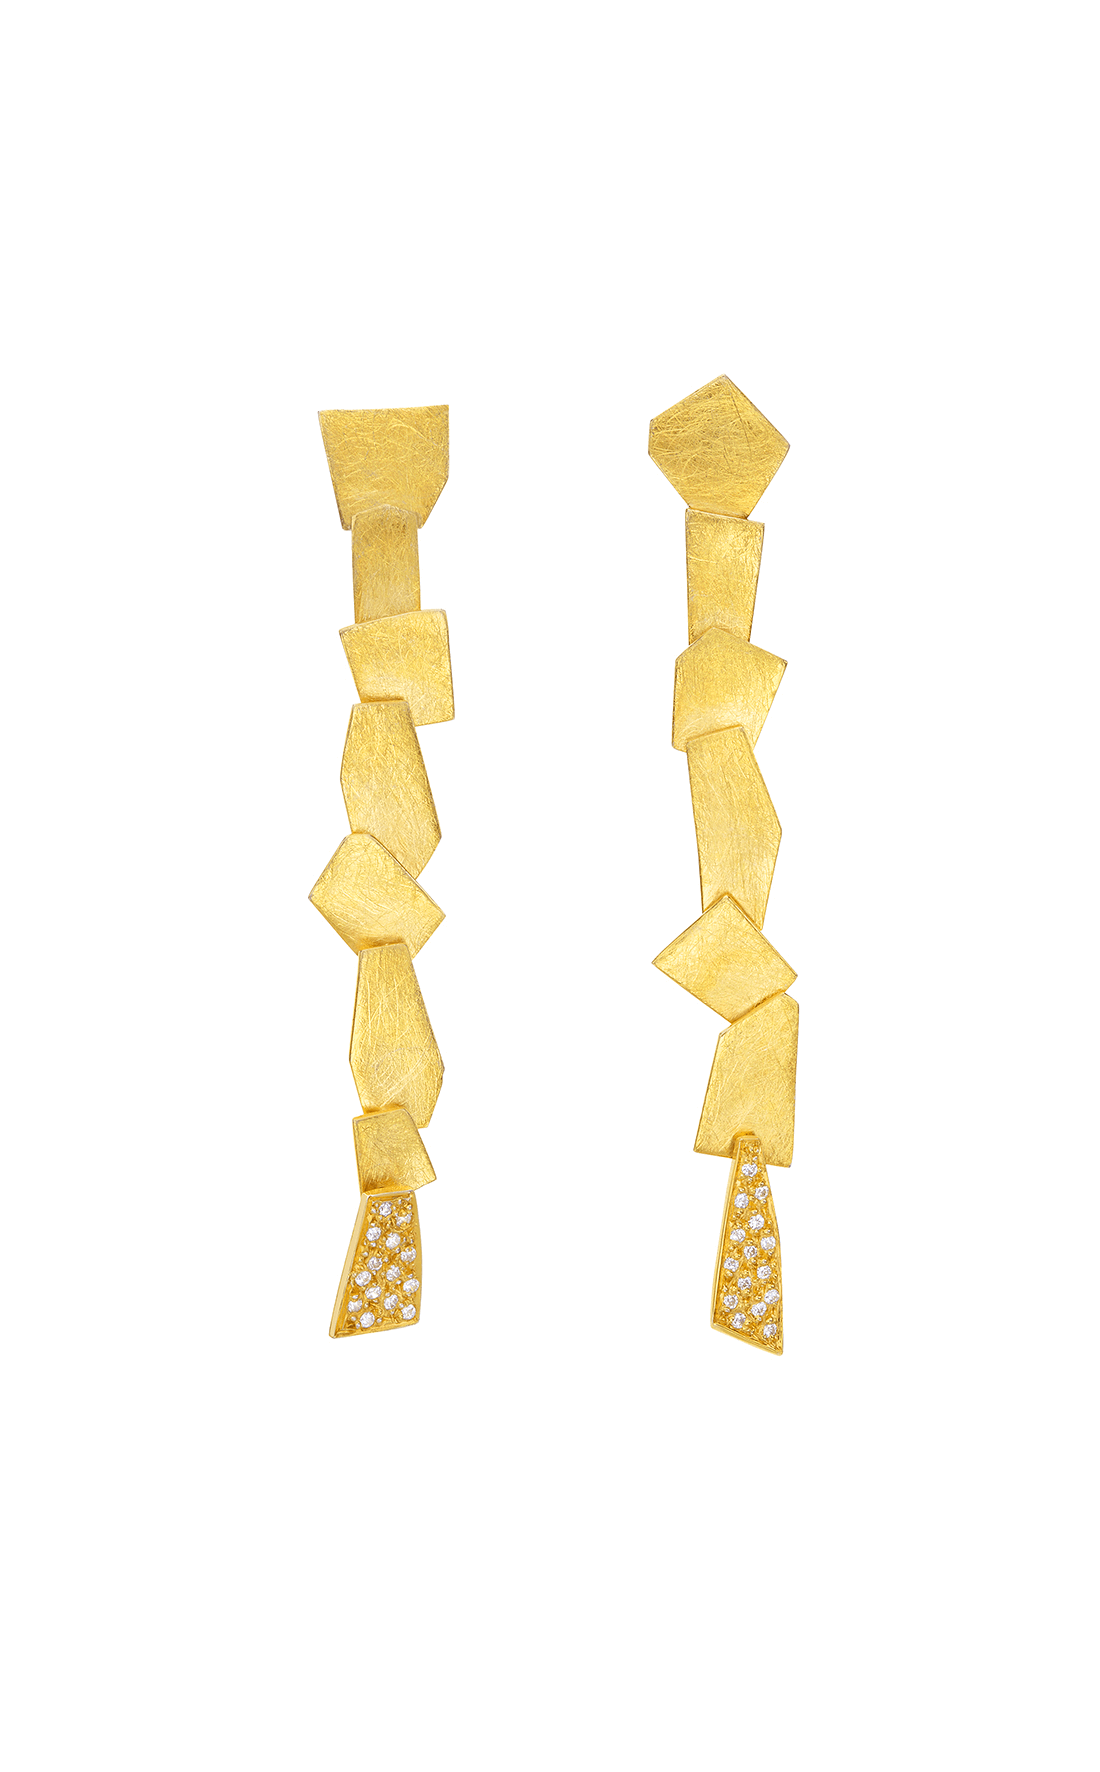 FRE001 - Golden Fragments Earrings